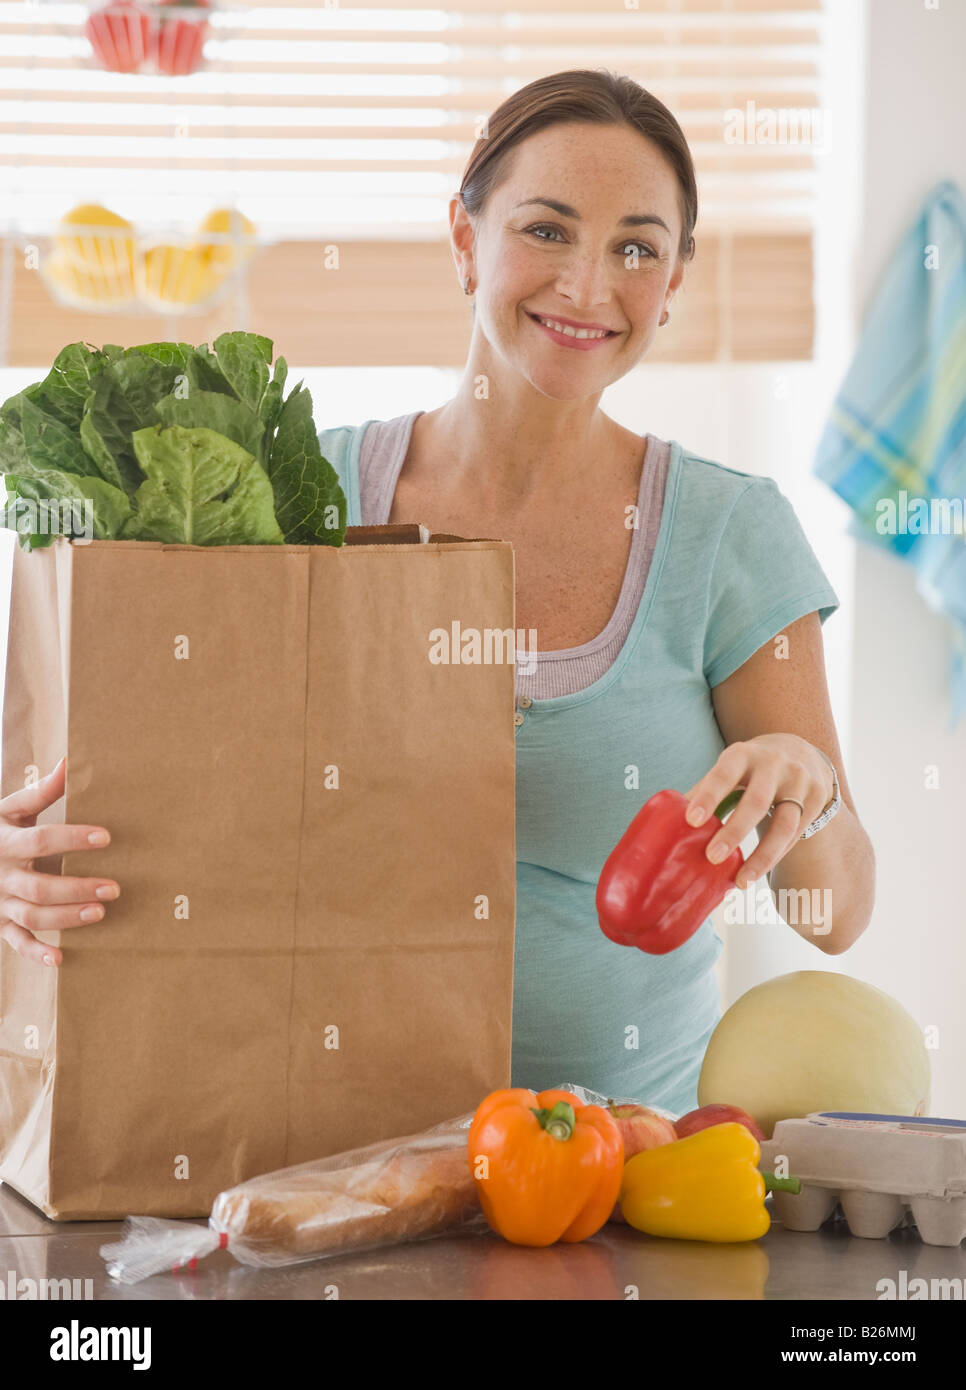 Pregnant Hispanic woman unpacking groceries - Stock Image